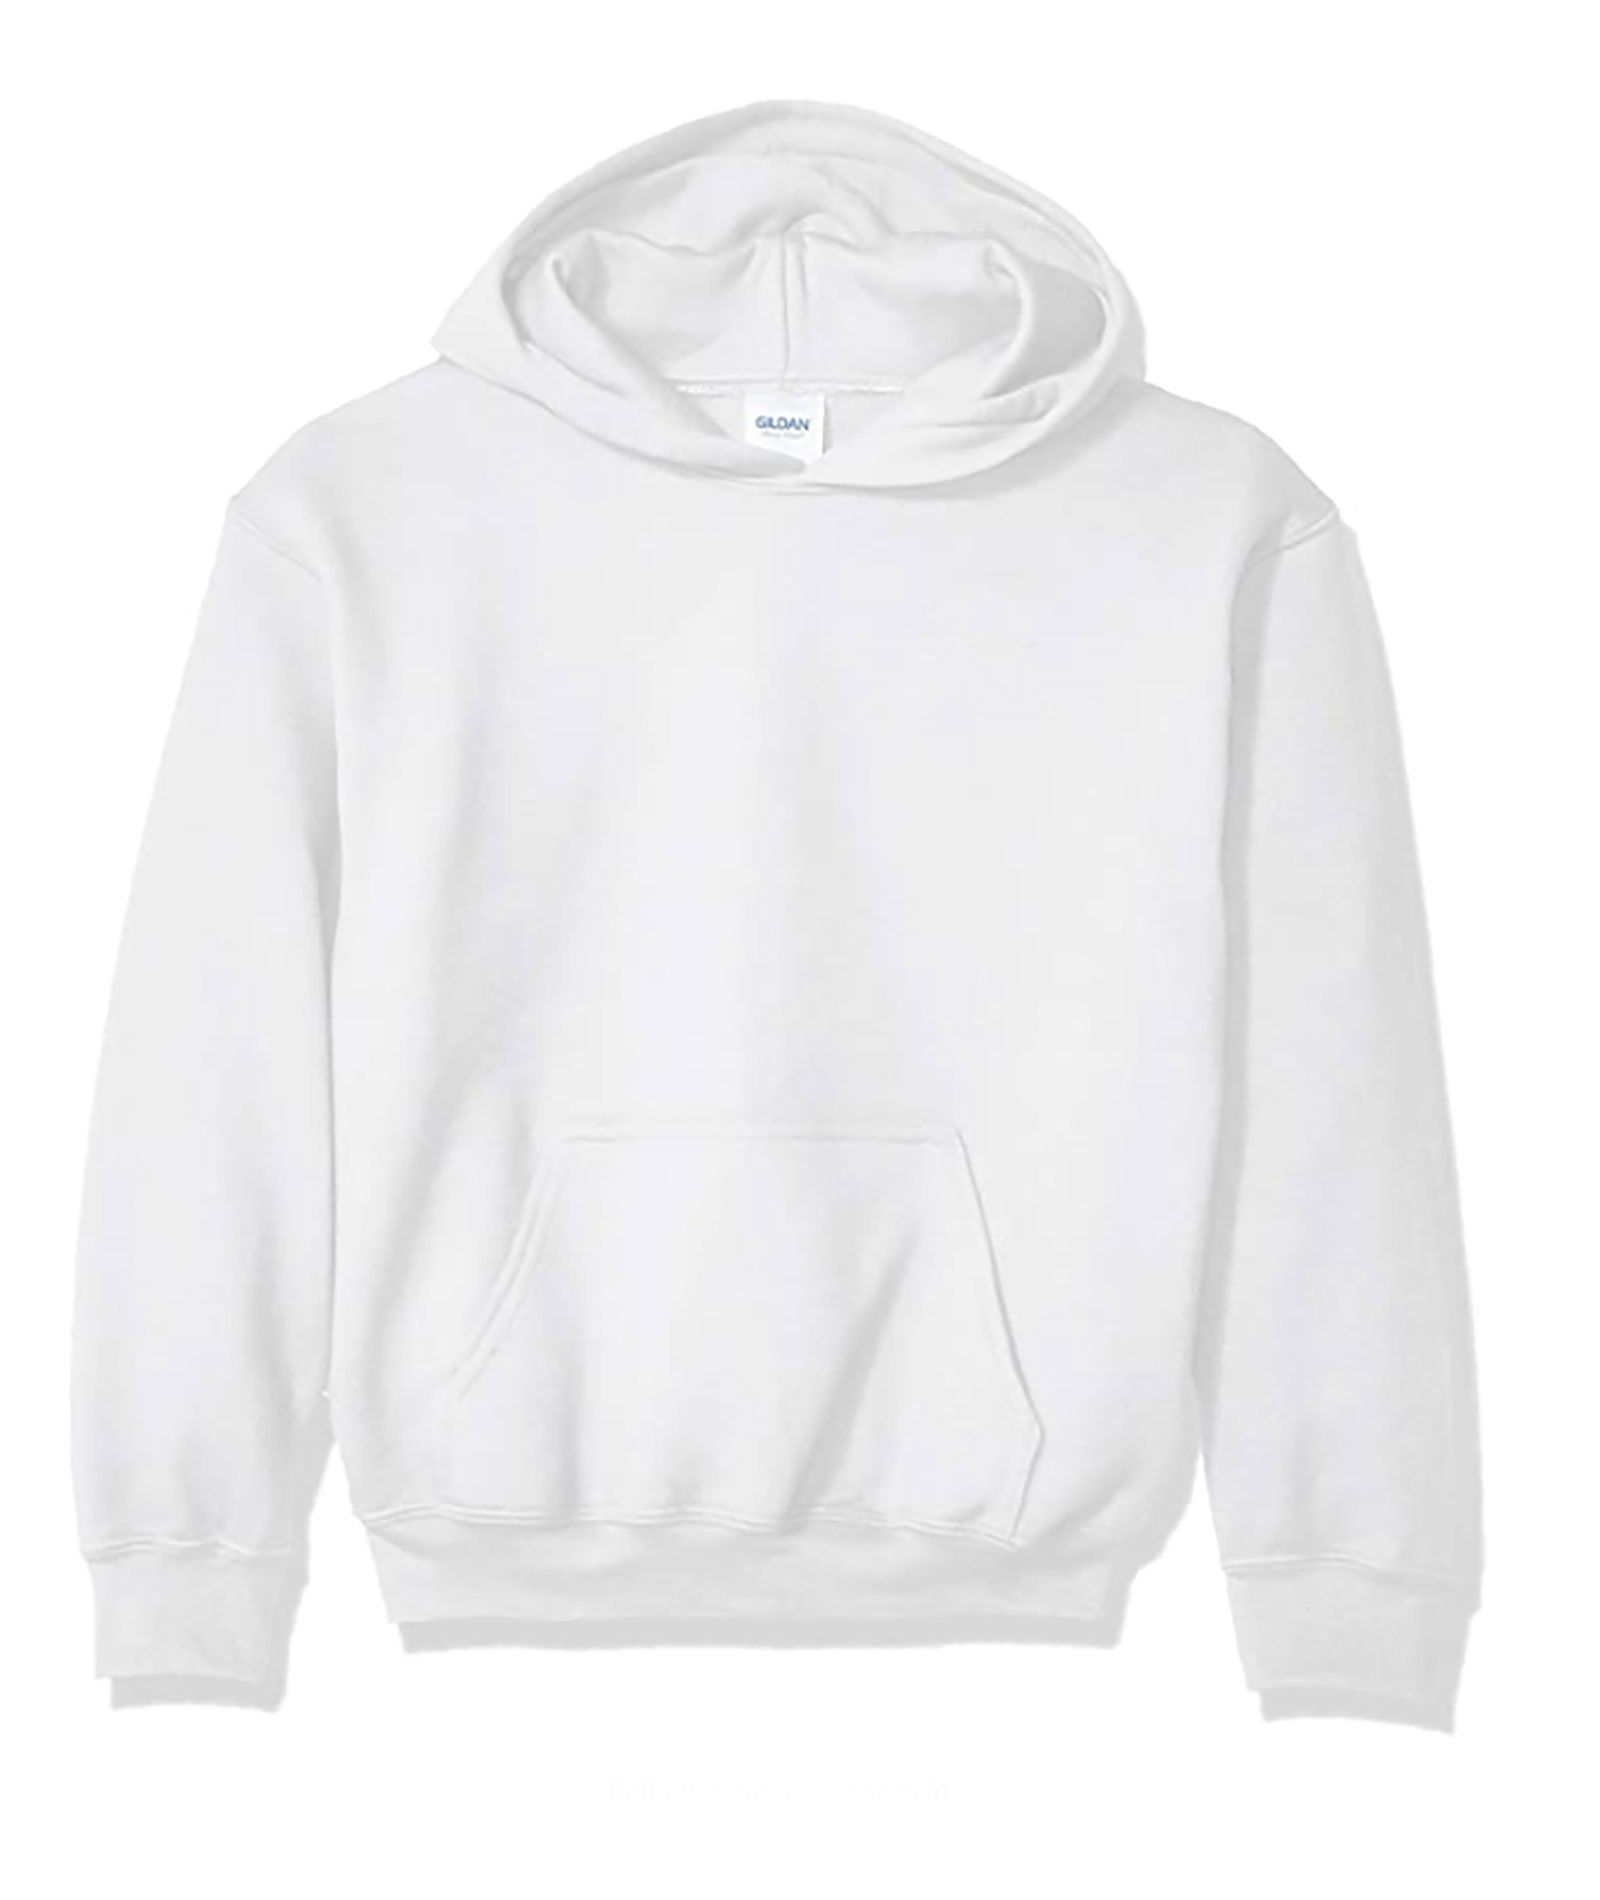 This super soft pullover hoodie from Gildan is great to wear everyday, lounge around the house in and at camp. A great item to tie-dye or even add a camp transfer to!